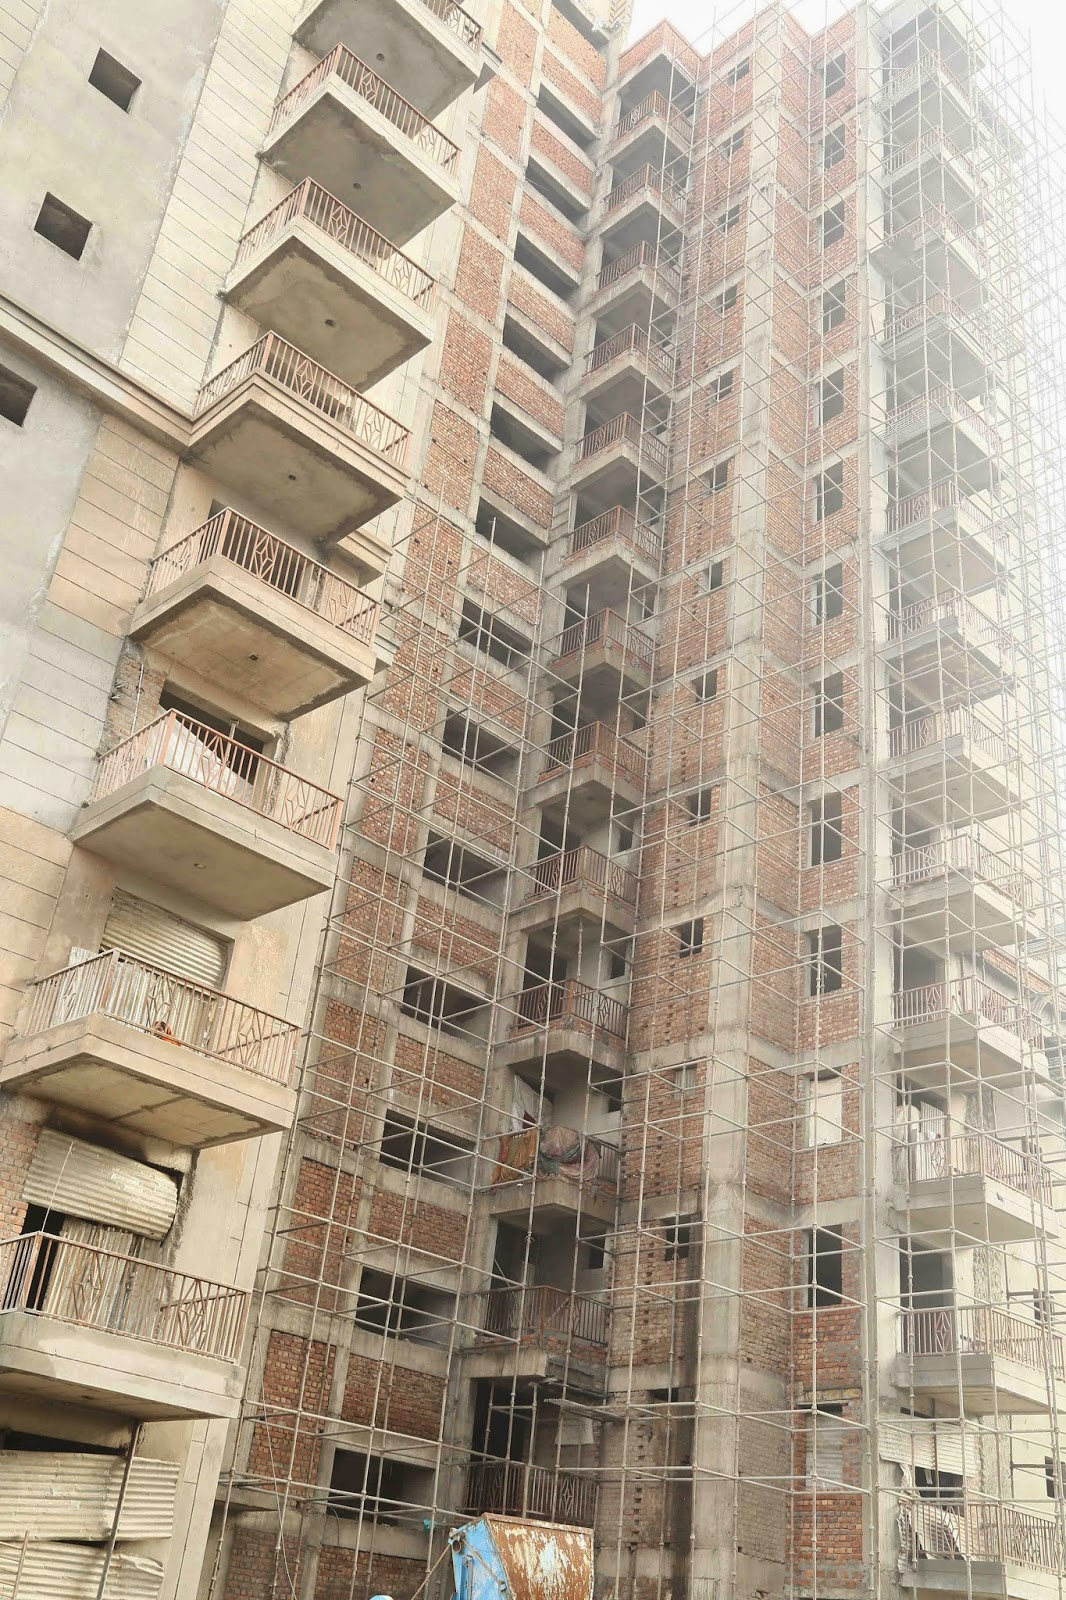 https://www.mtzirakpur.com/mg-property-construction-images.php